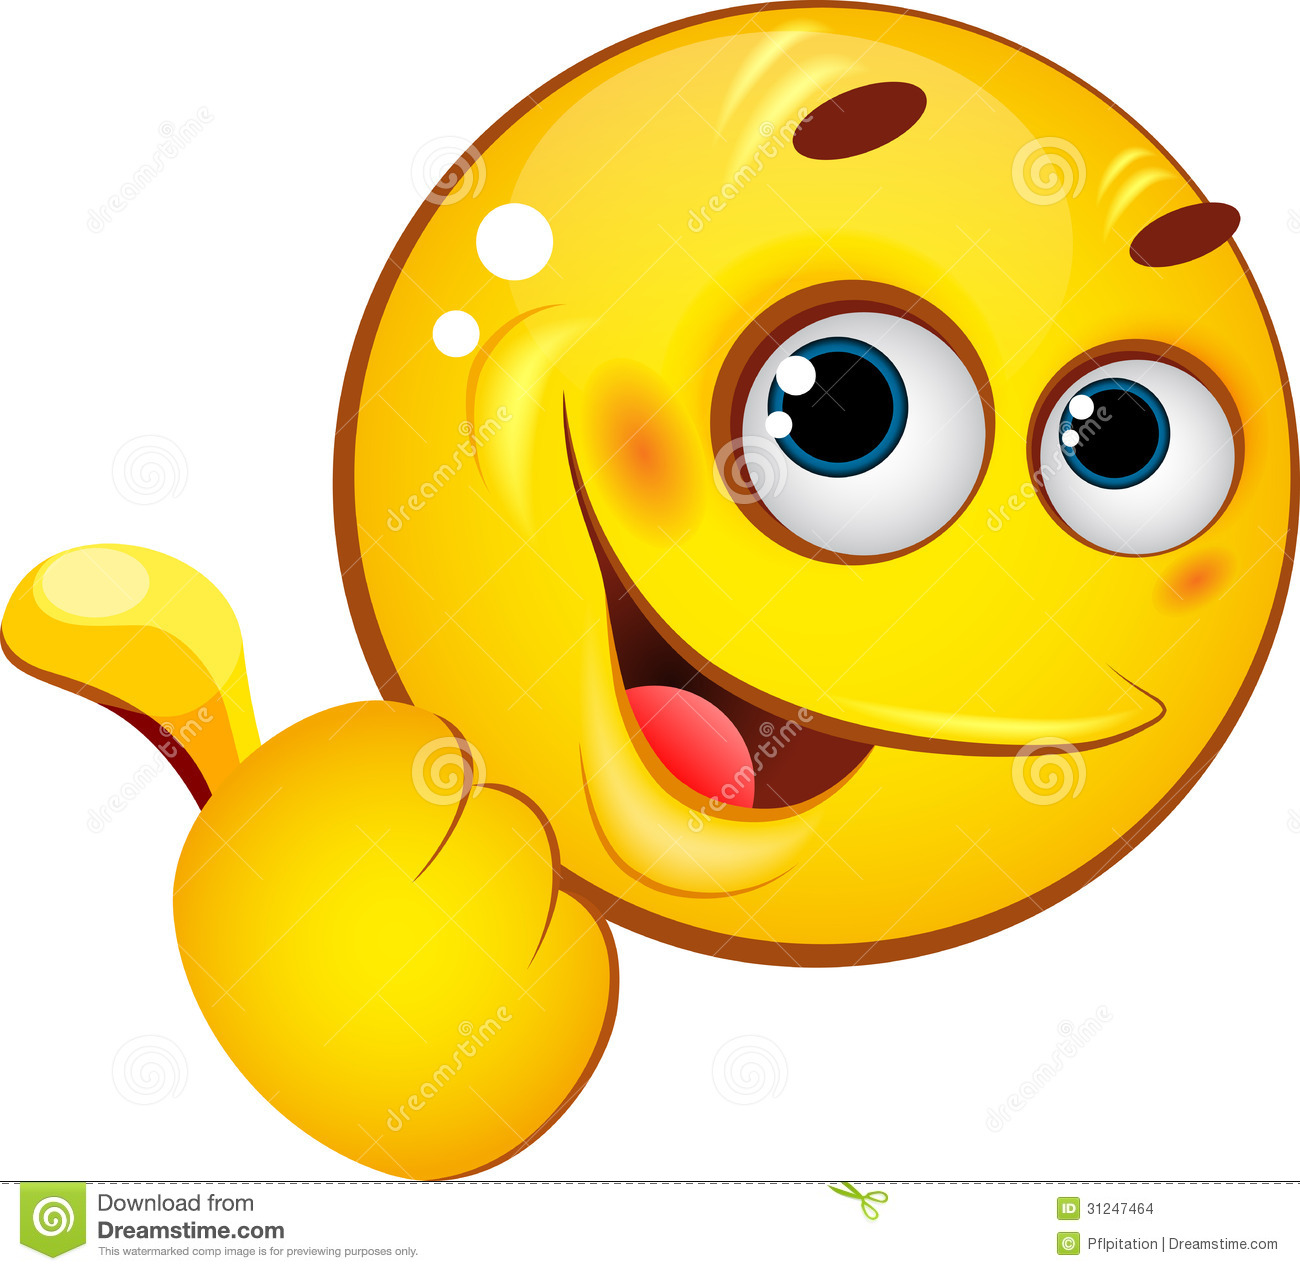 Smileys clipart thumbs up Clipart Clipart Free Happy smiley%20face%20clip%20art%20thumbs%20up